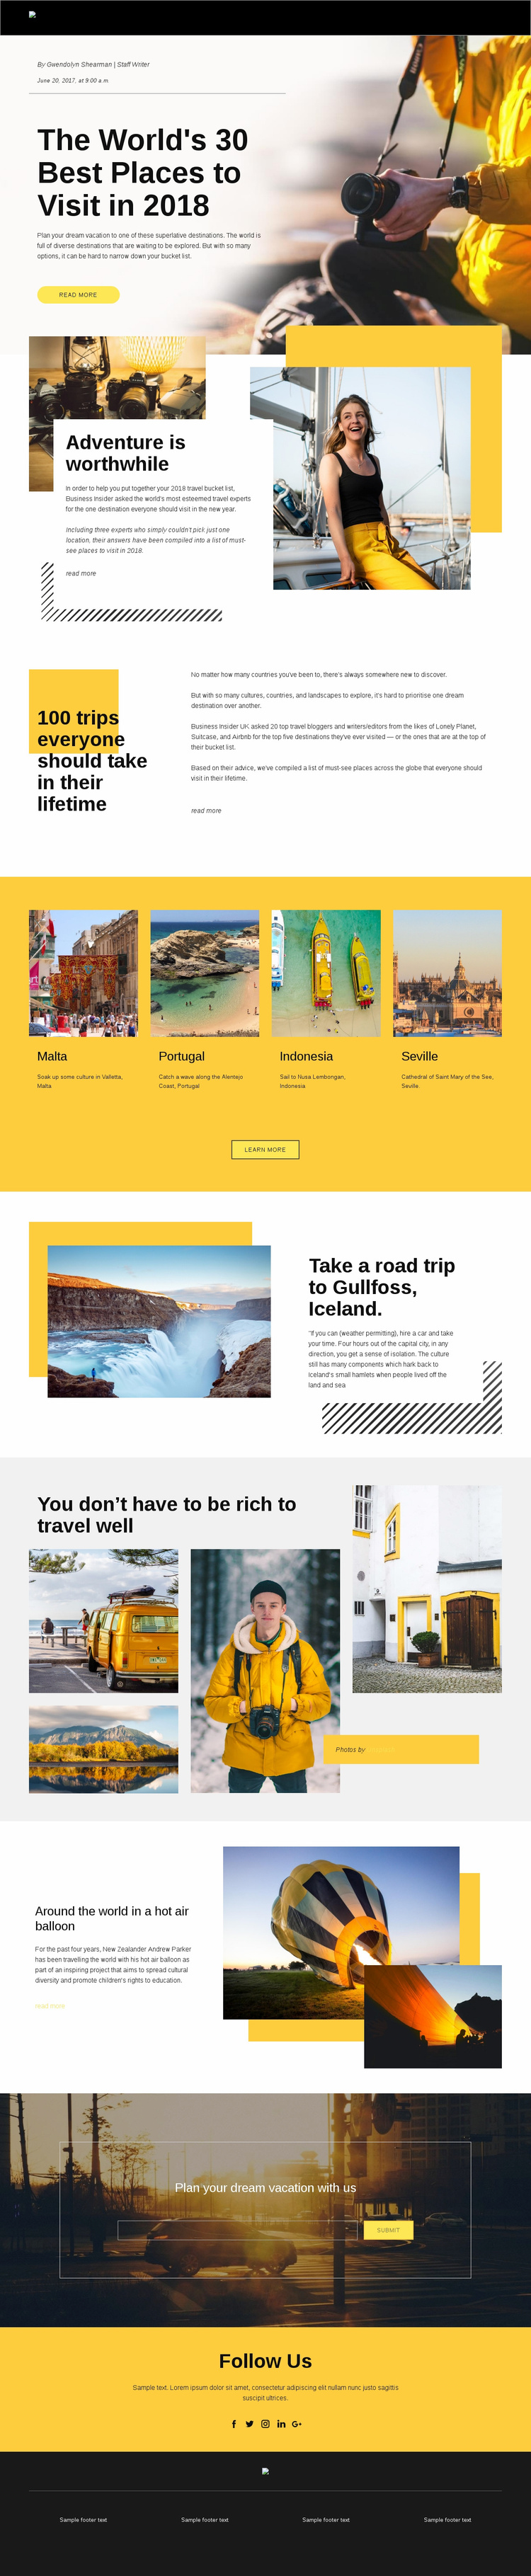 Best Places to Visit Landing Page